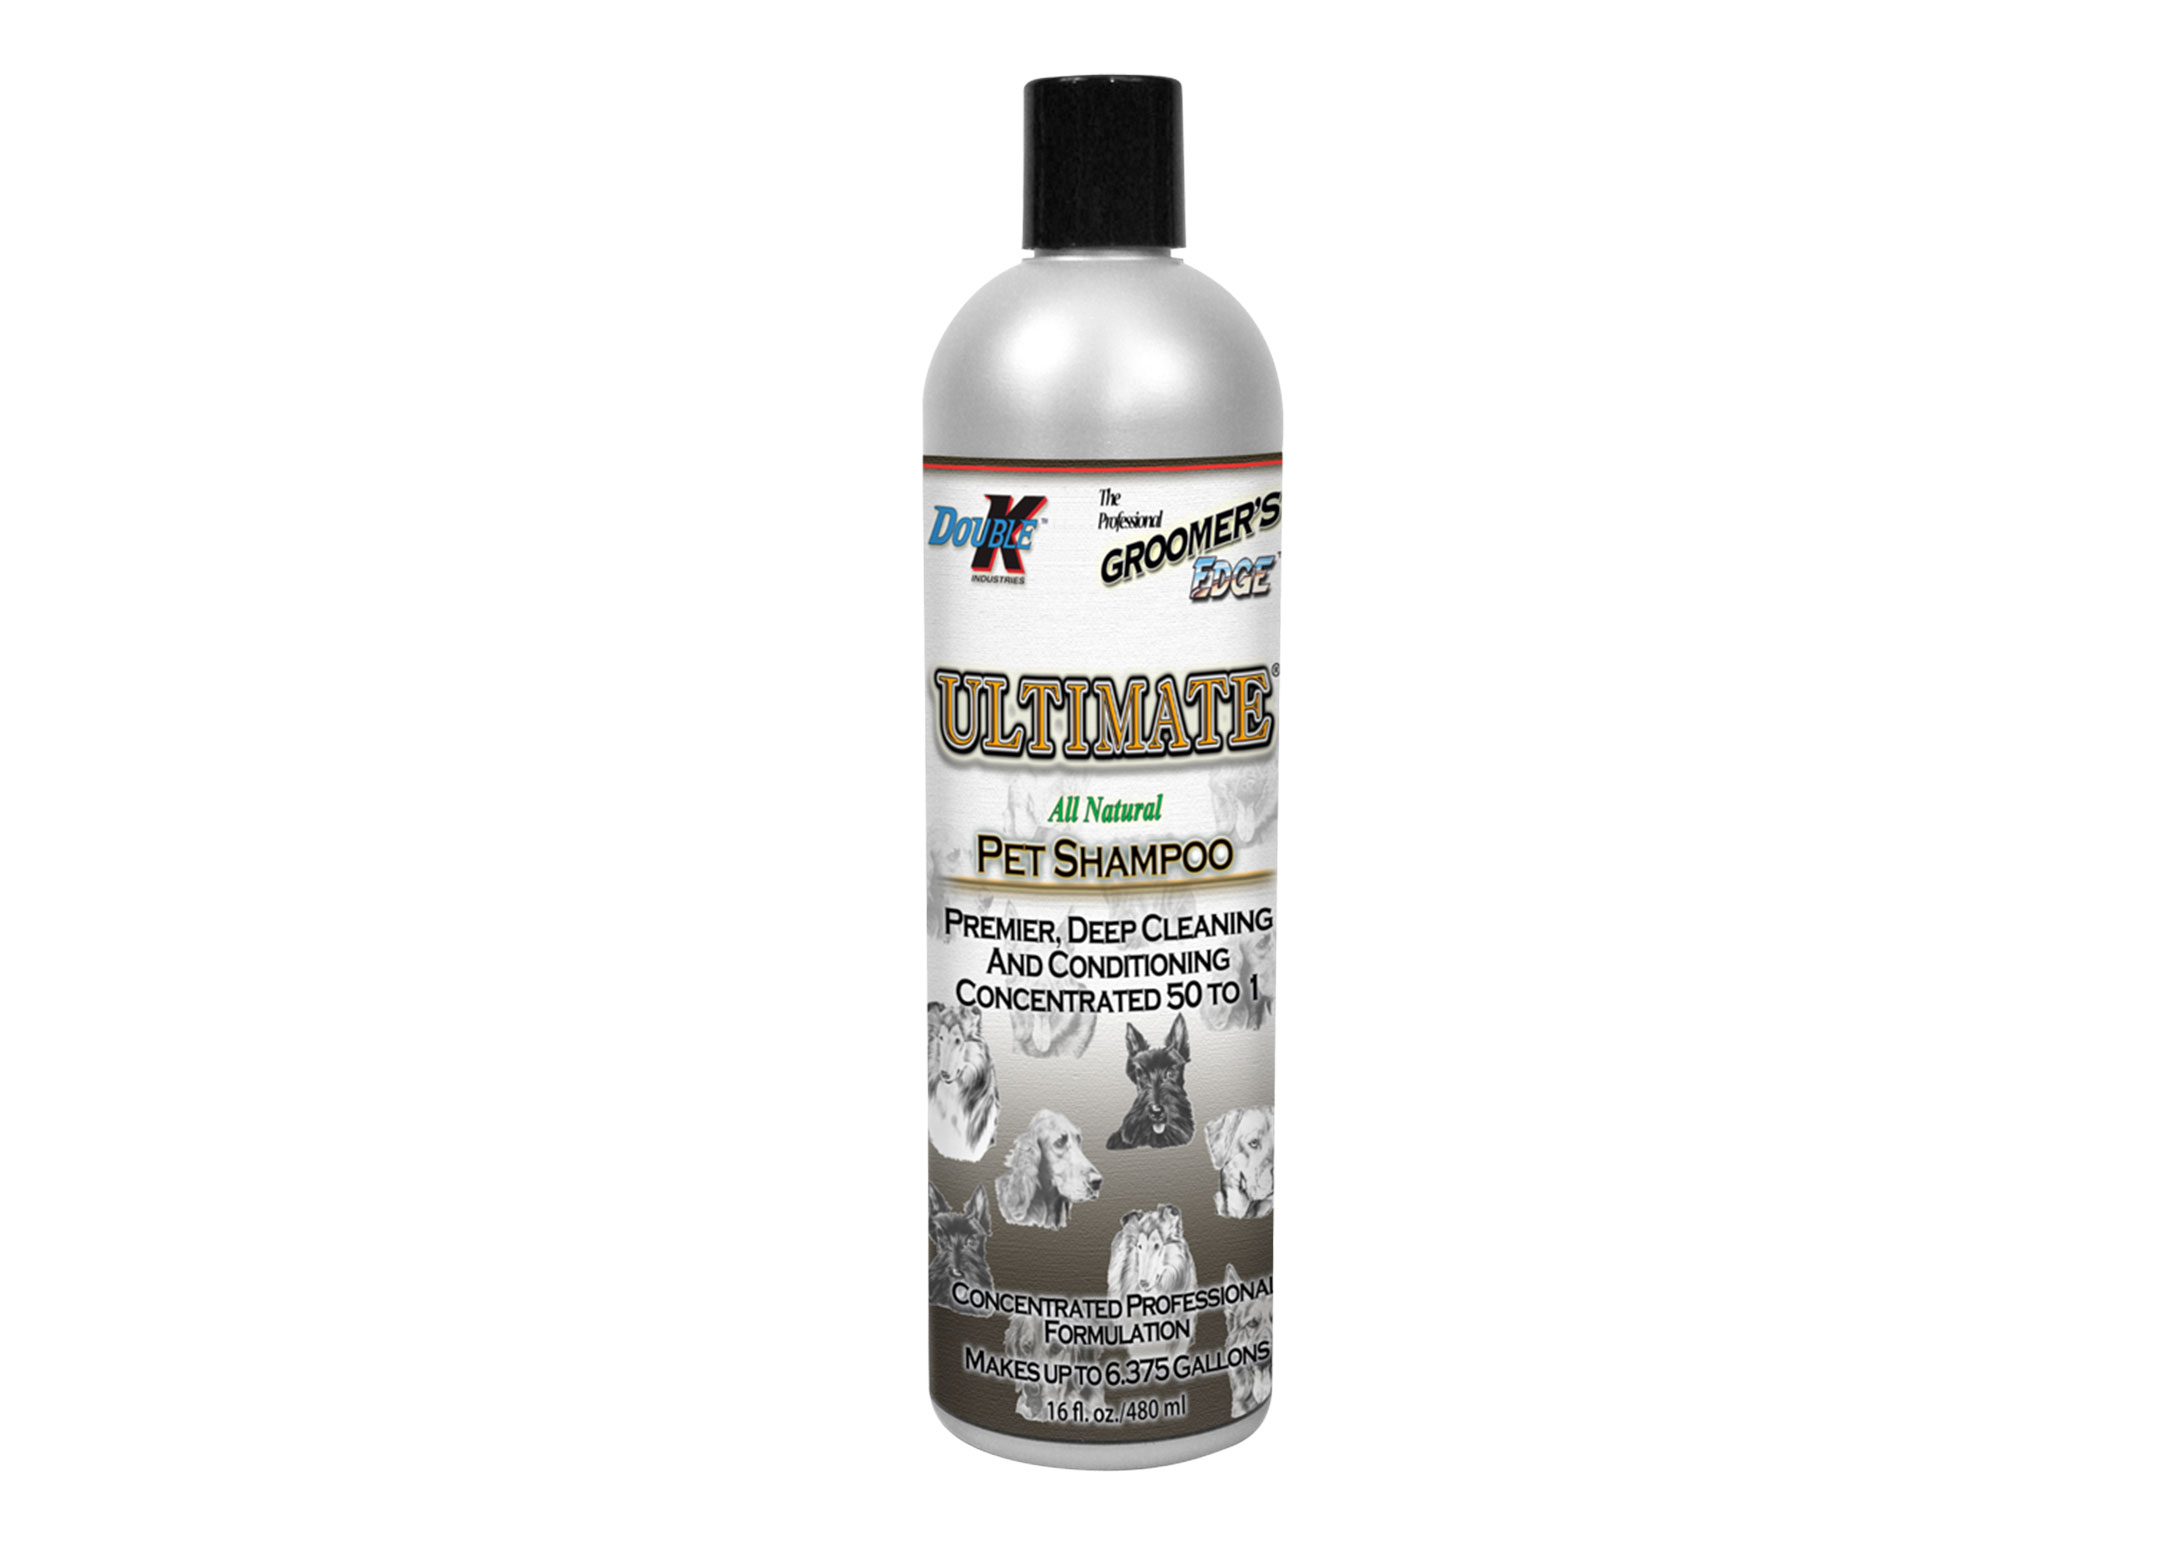 Double K Ultimate Shampoo For Dogs, Cats And Horses